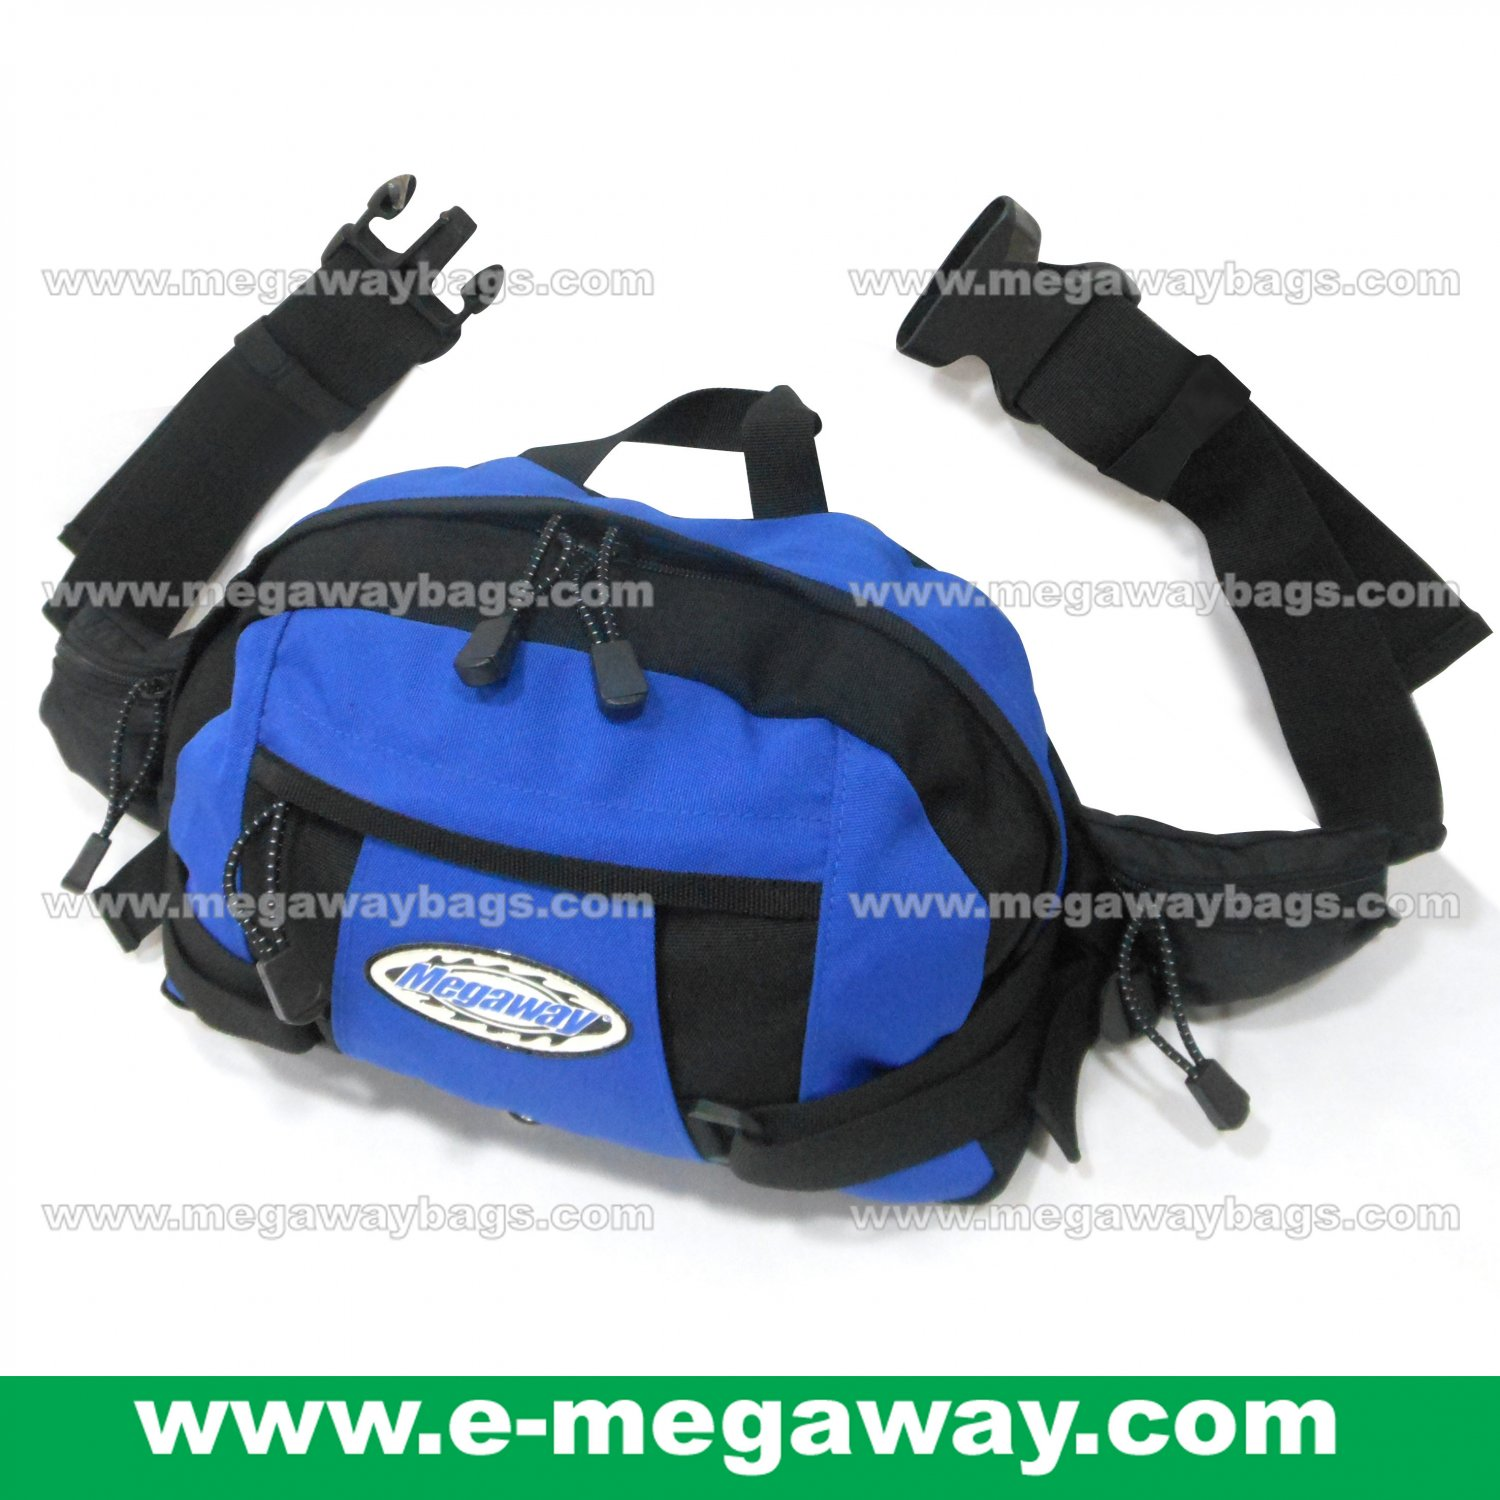 Megaway Sports Hiking Day Pack Backpack Waist Hip Bag Camping Hunting Work MegawayBags #CC-0320